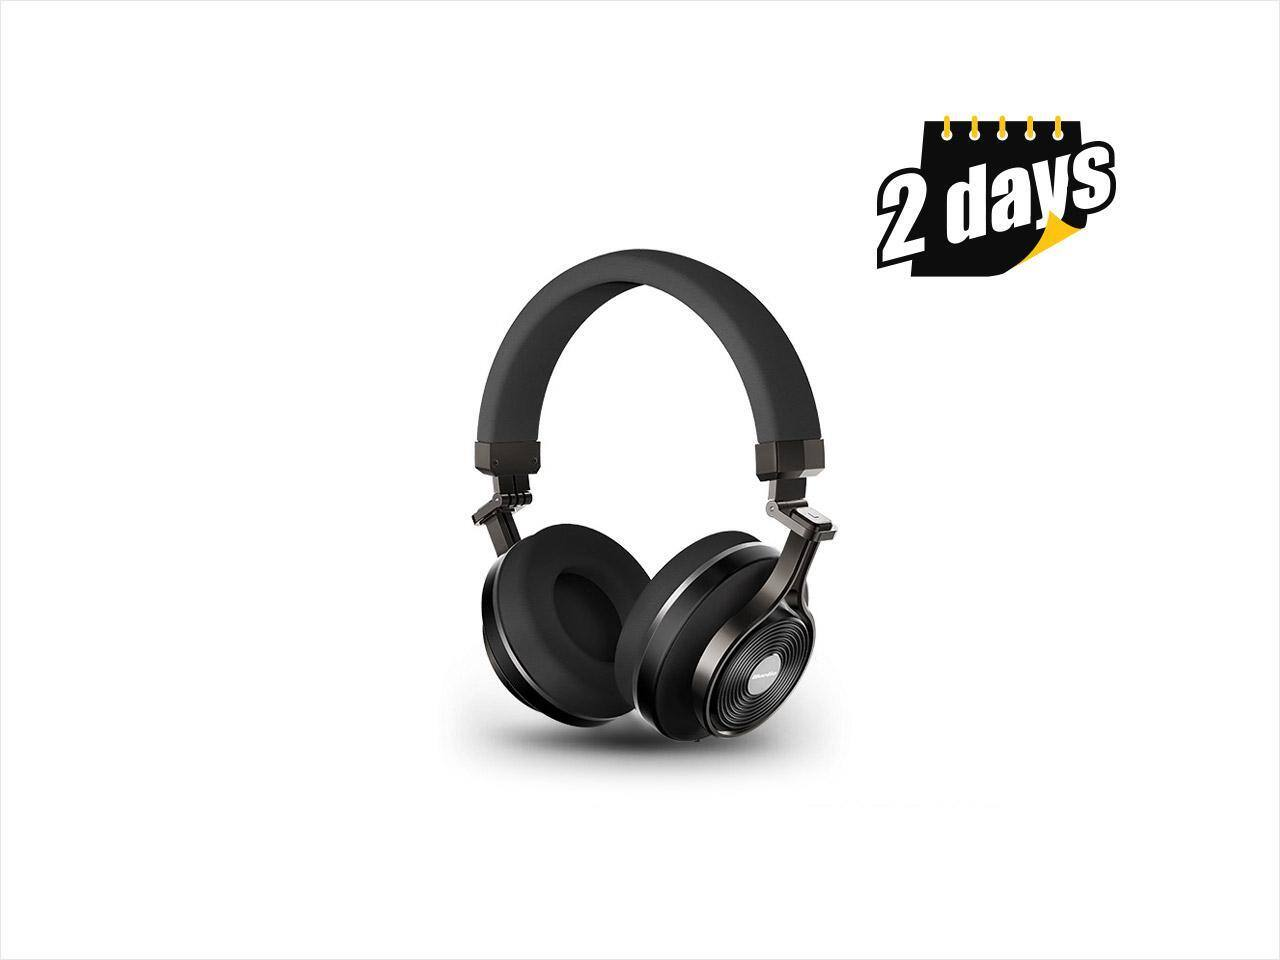 Bluedio T3+/T3 Plus Bluetooth 4.1 Headphones w/Mic $36@NF